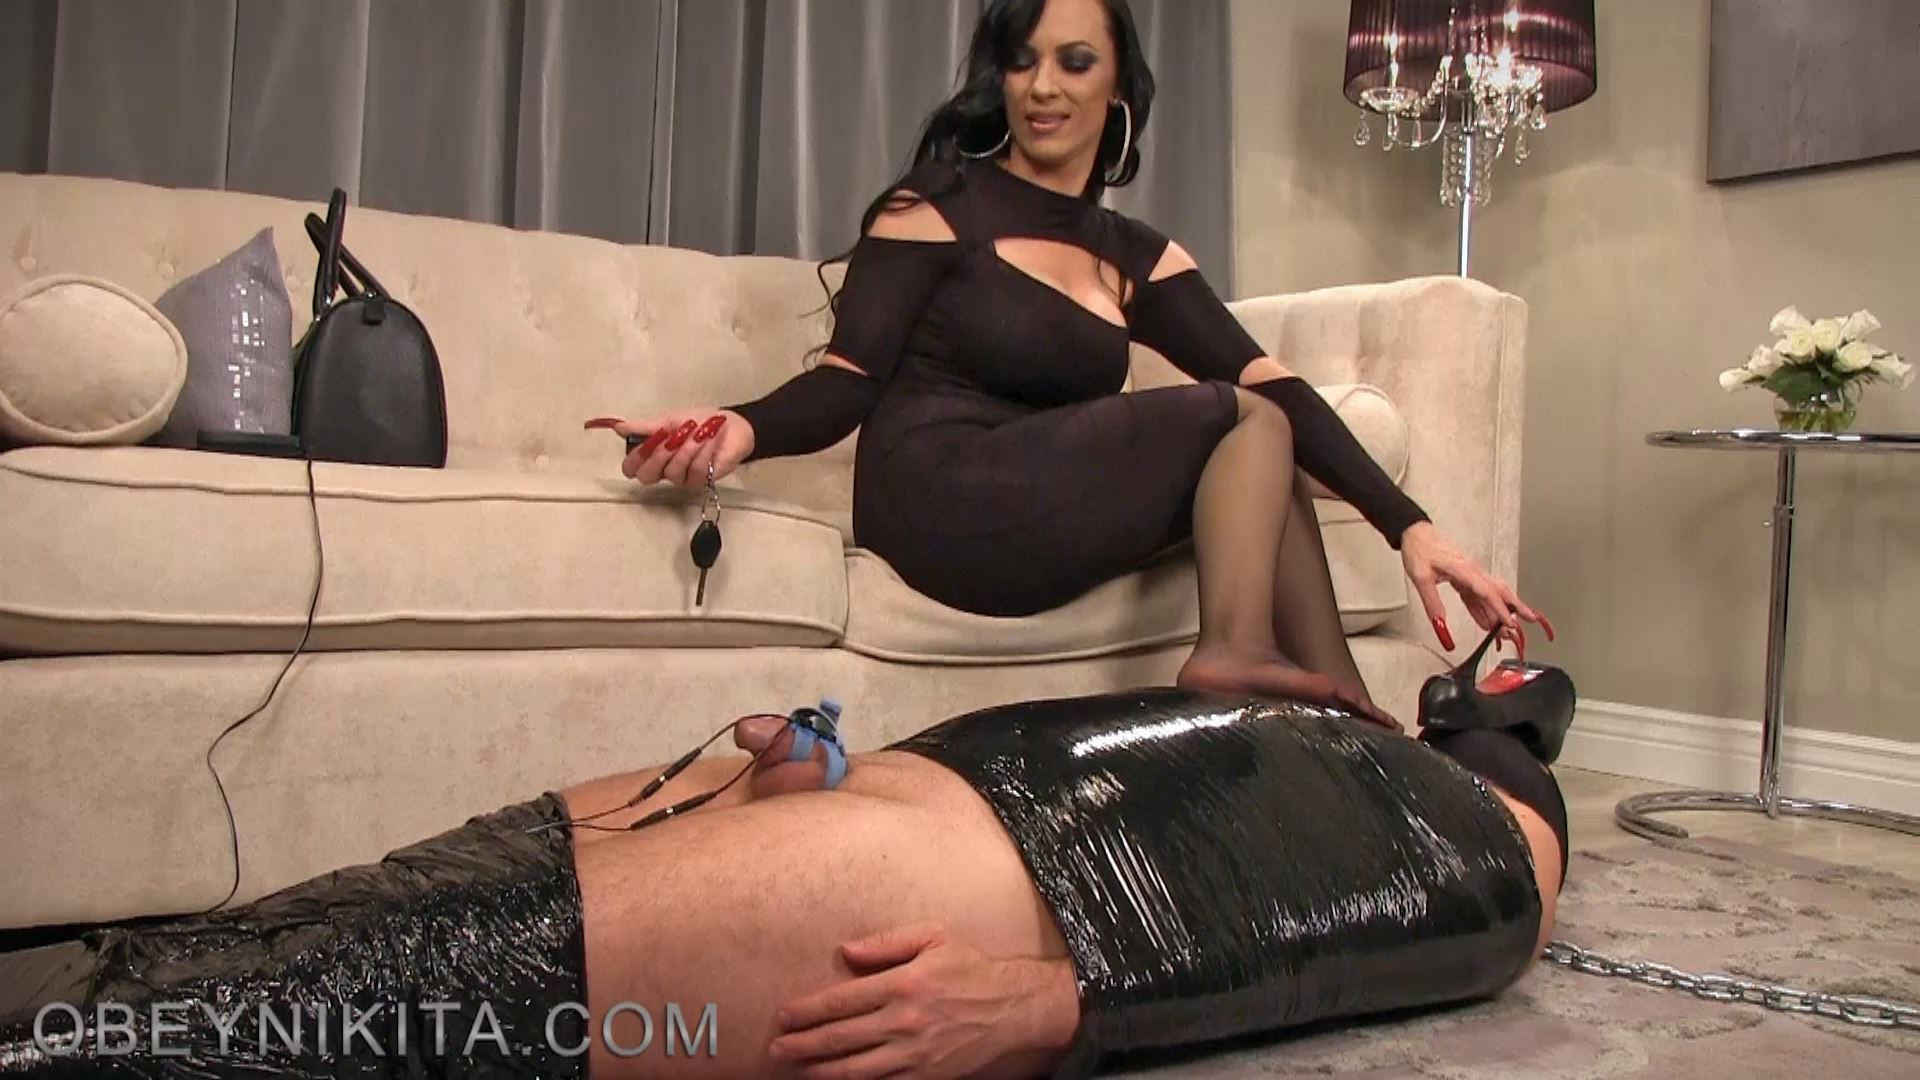 Mistress Nikita In Scene: Living Welcome Mat - OBEYNIKITA - FULL HD/1080p/MP4